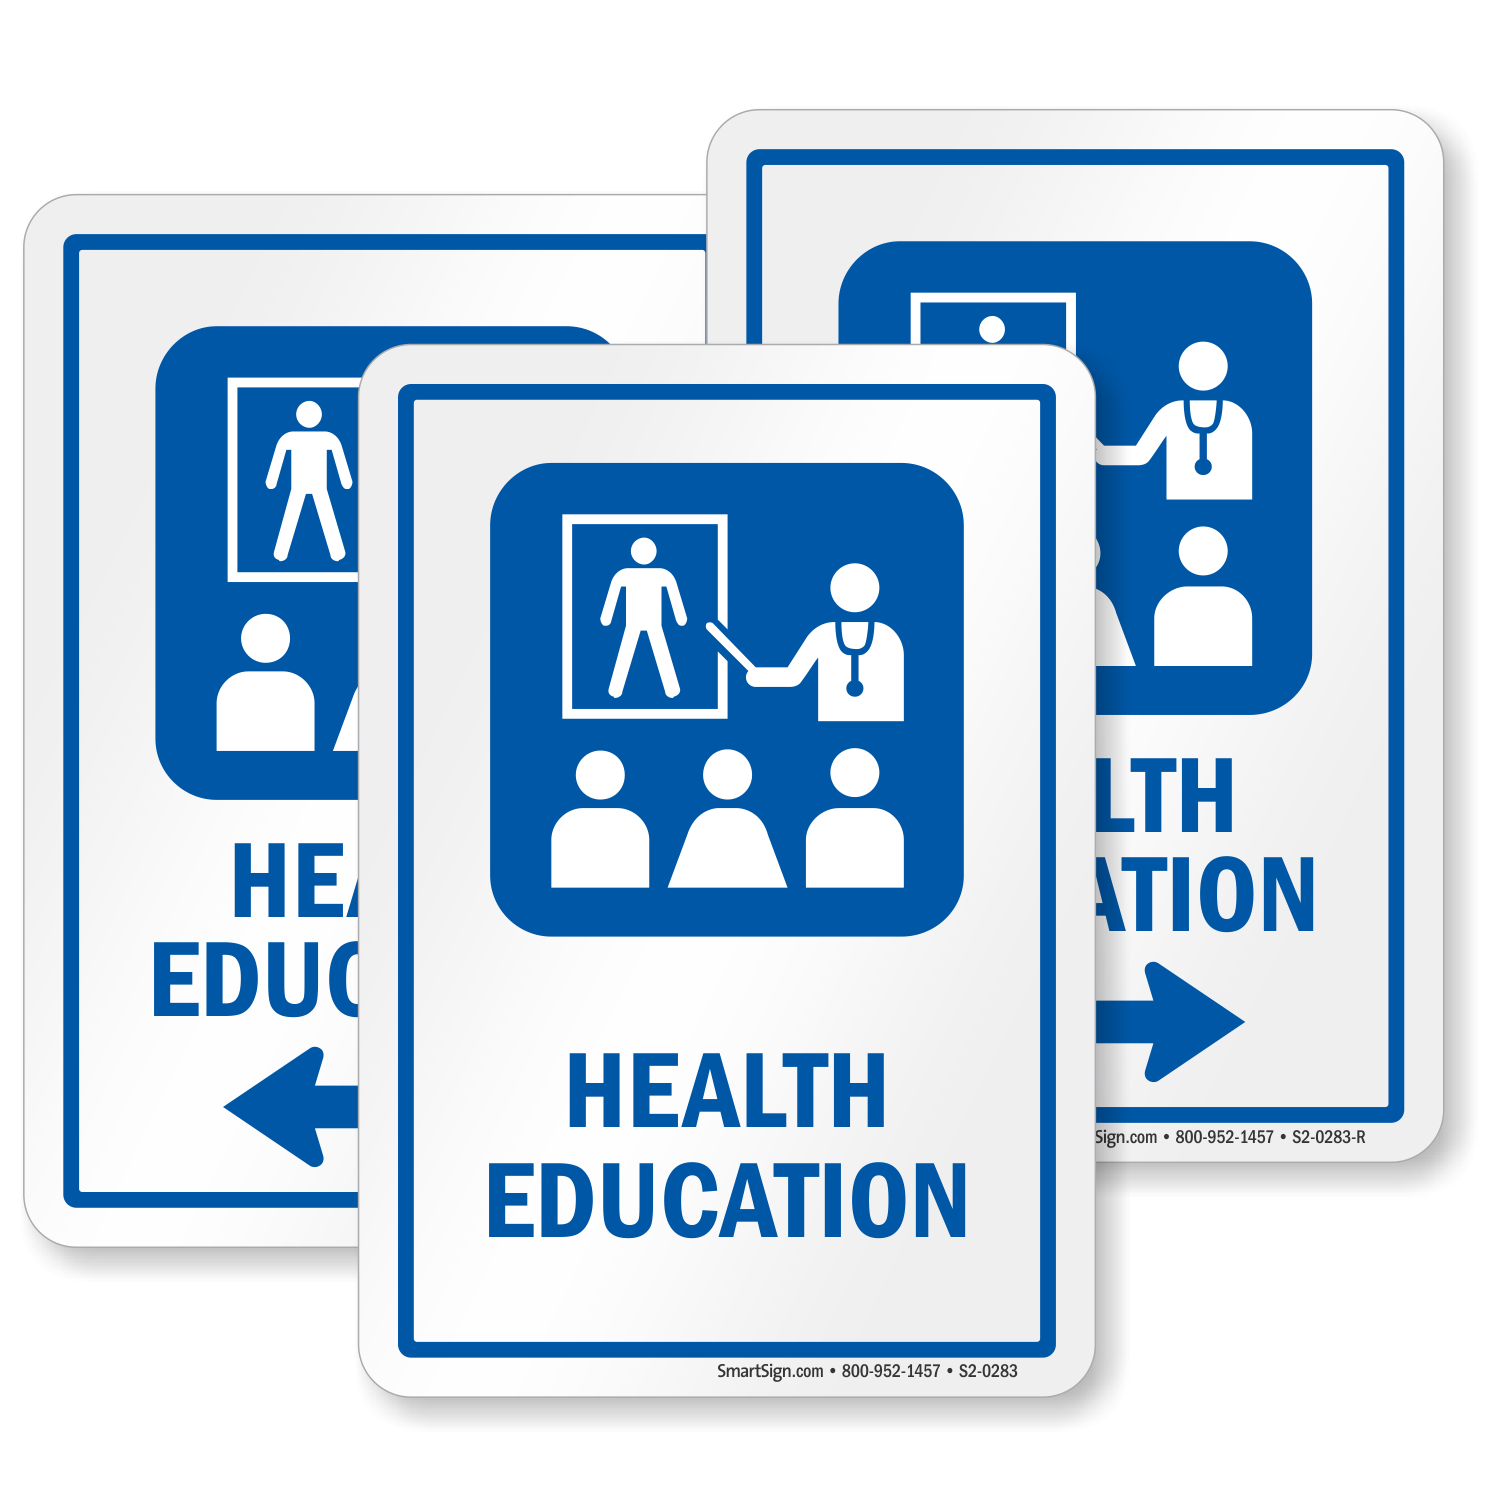 Health Education Hospital Sign Health Educator Symbol Sku S2 0283